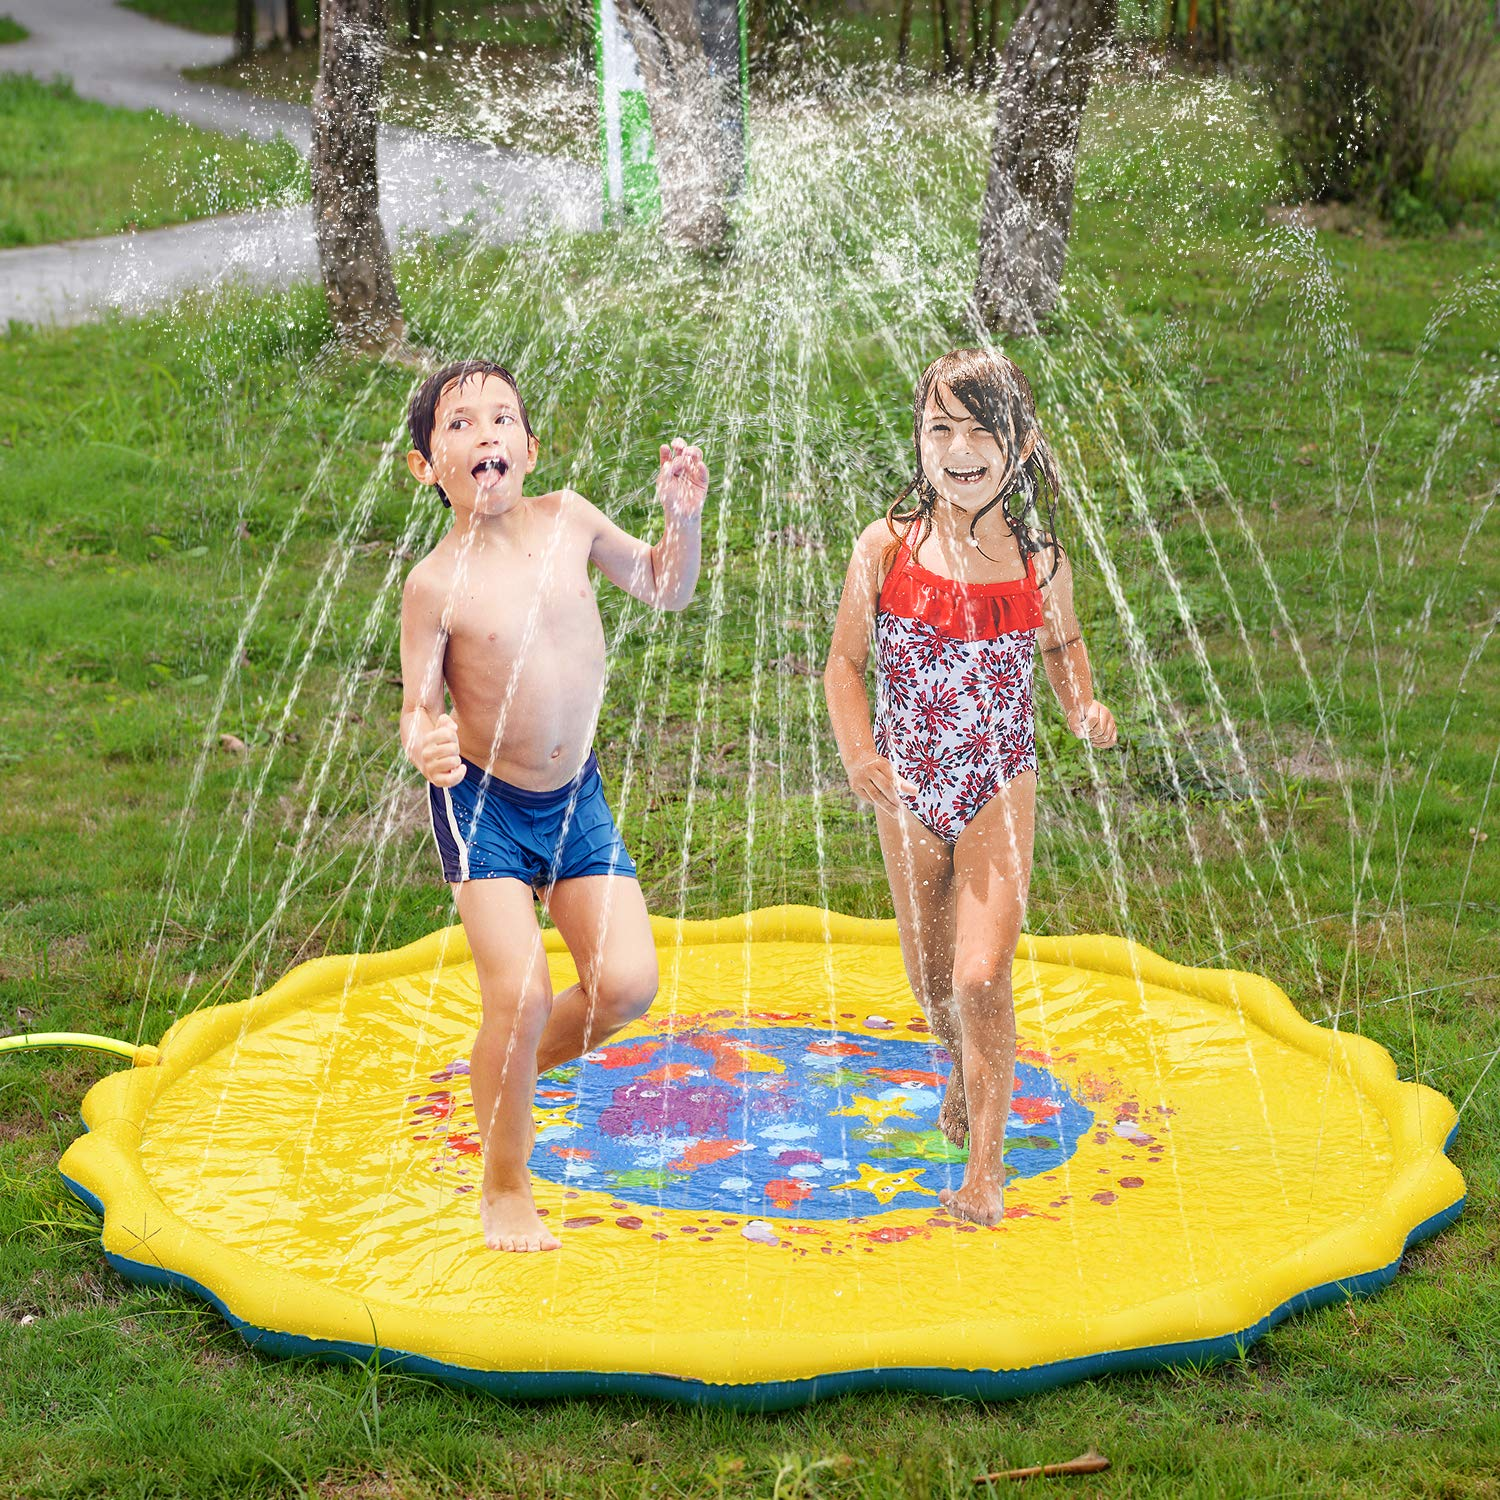 BATTOP Splash Play Mat 68in-Diameter Outdoor Water Play Sprinklers Summer Fun Backyard Play for Infants Toddlers and Kids (Yellow) best summer water toys